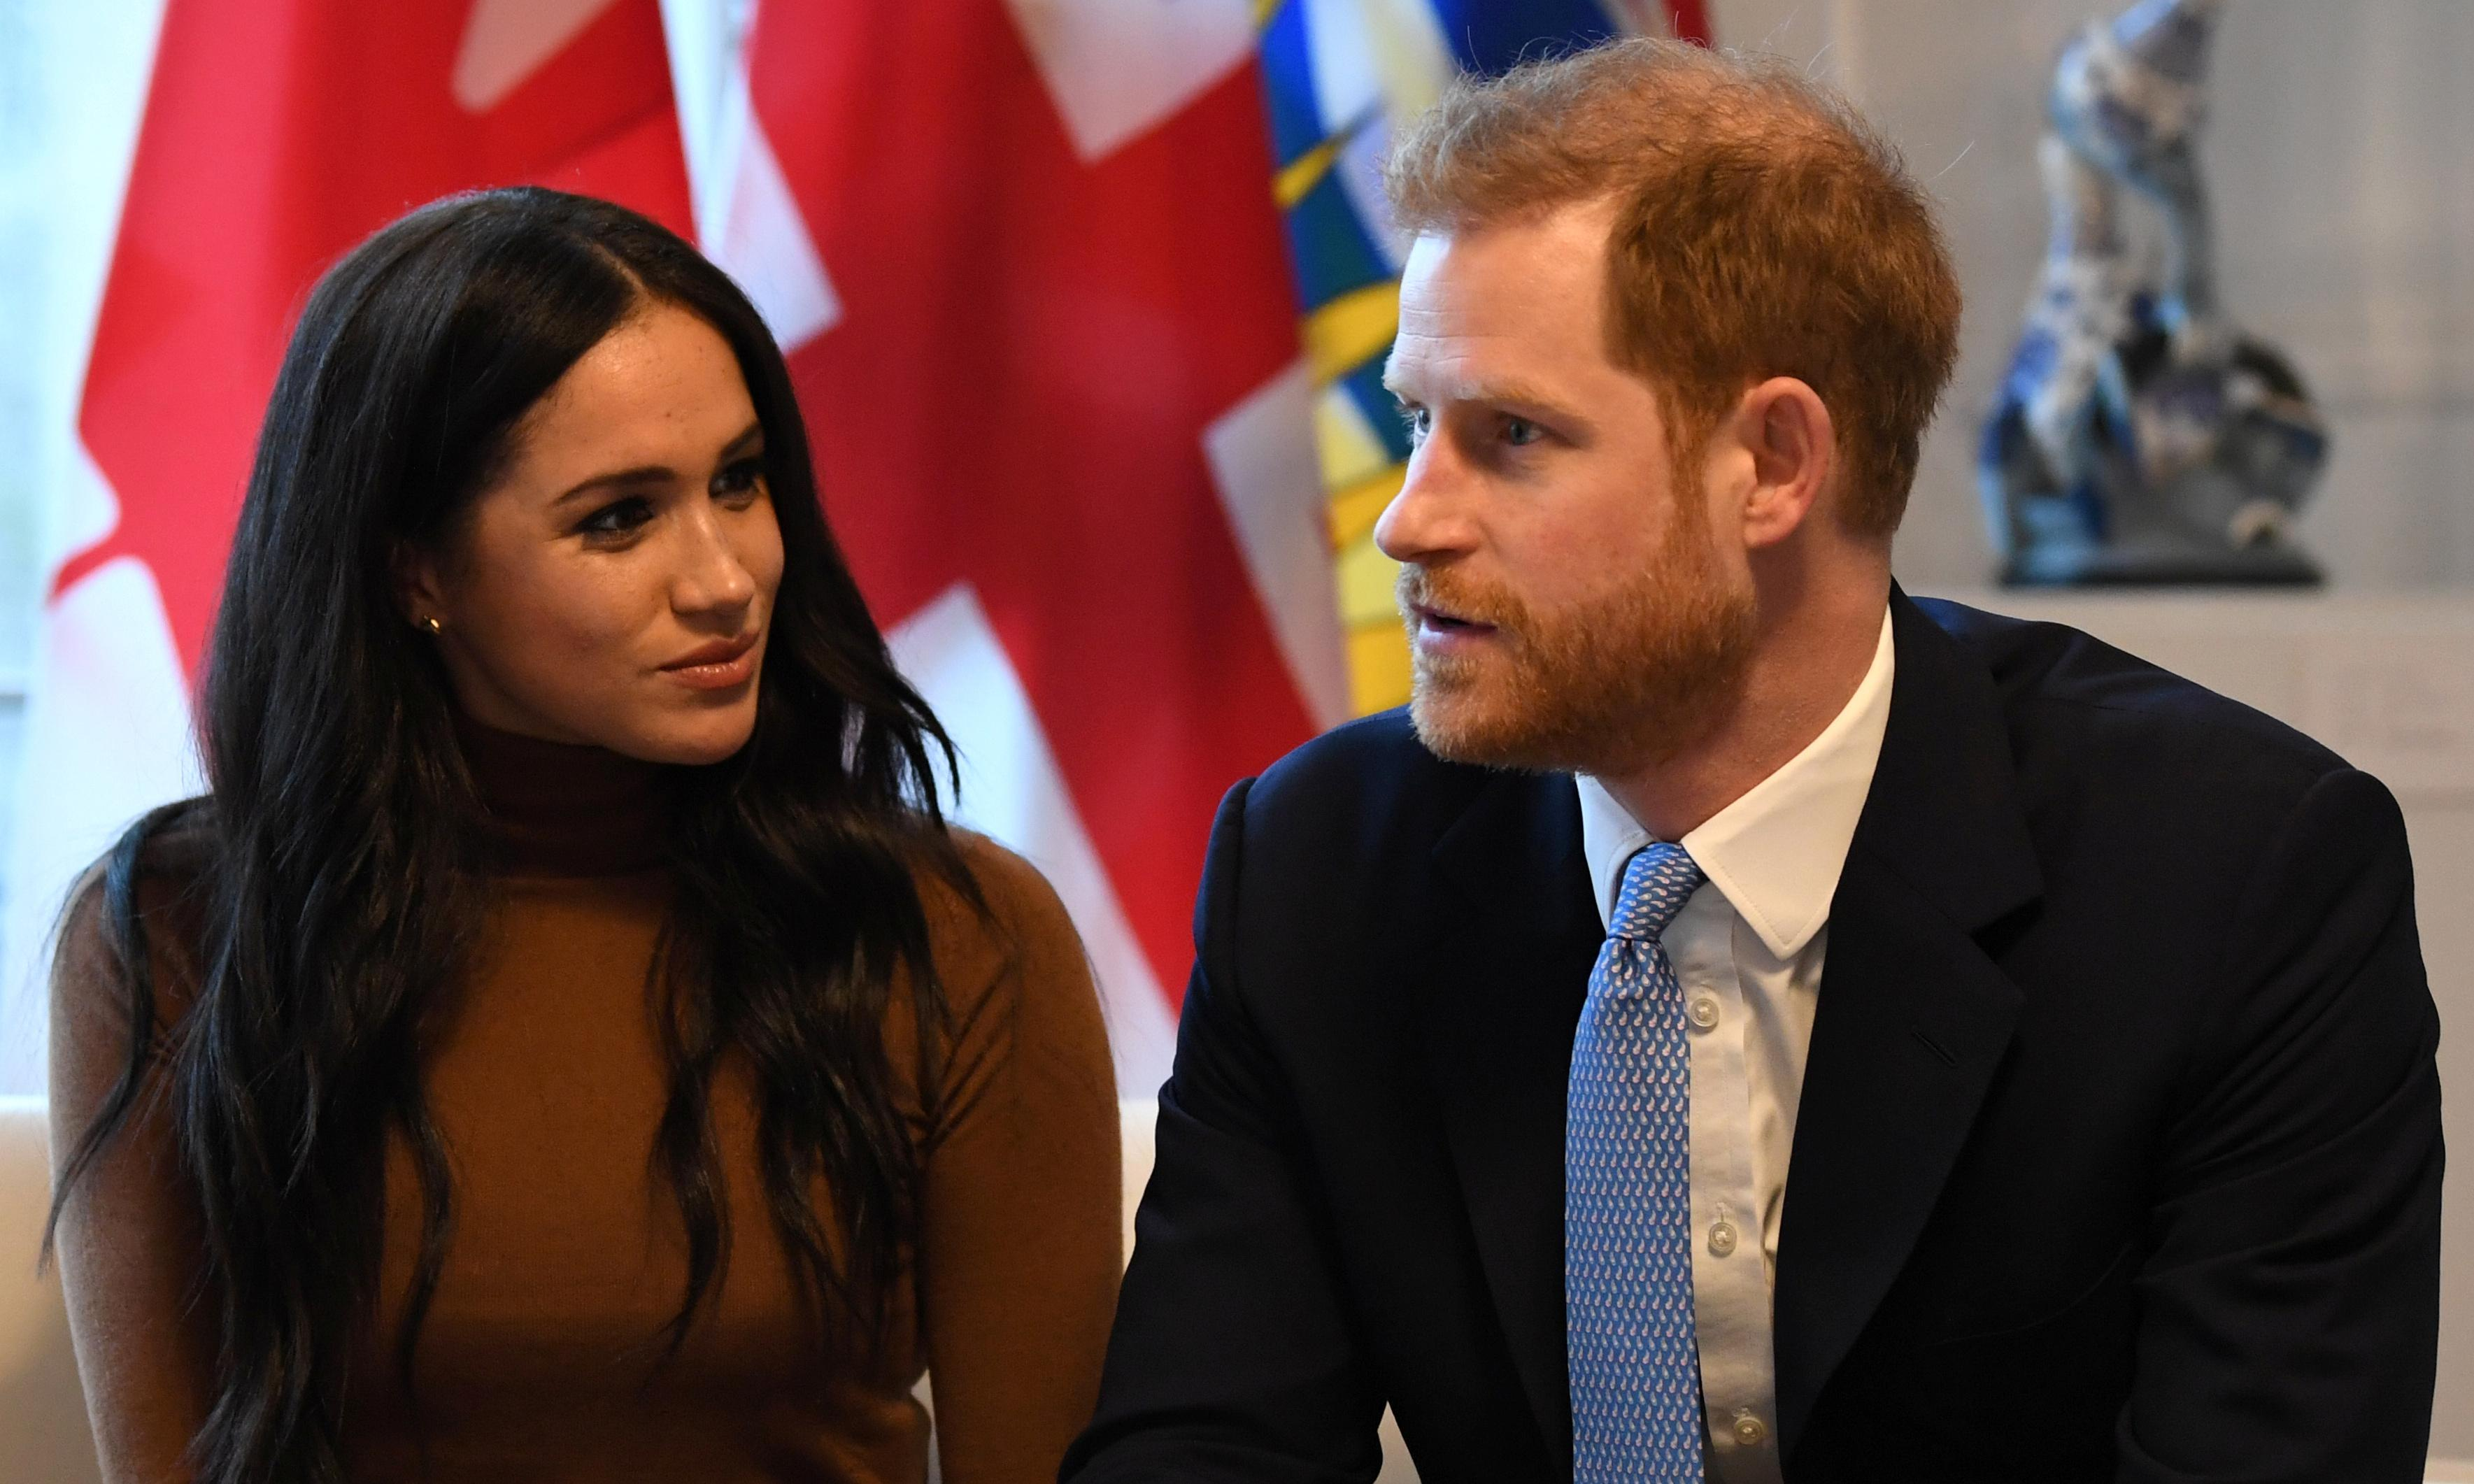 Harry and Meghan to drop HRH titles and repay £2.4m